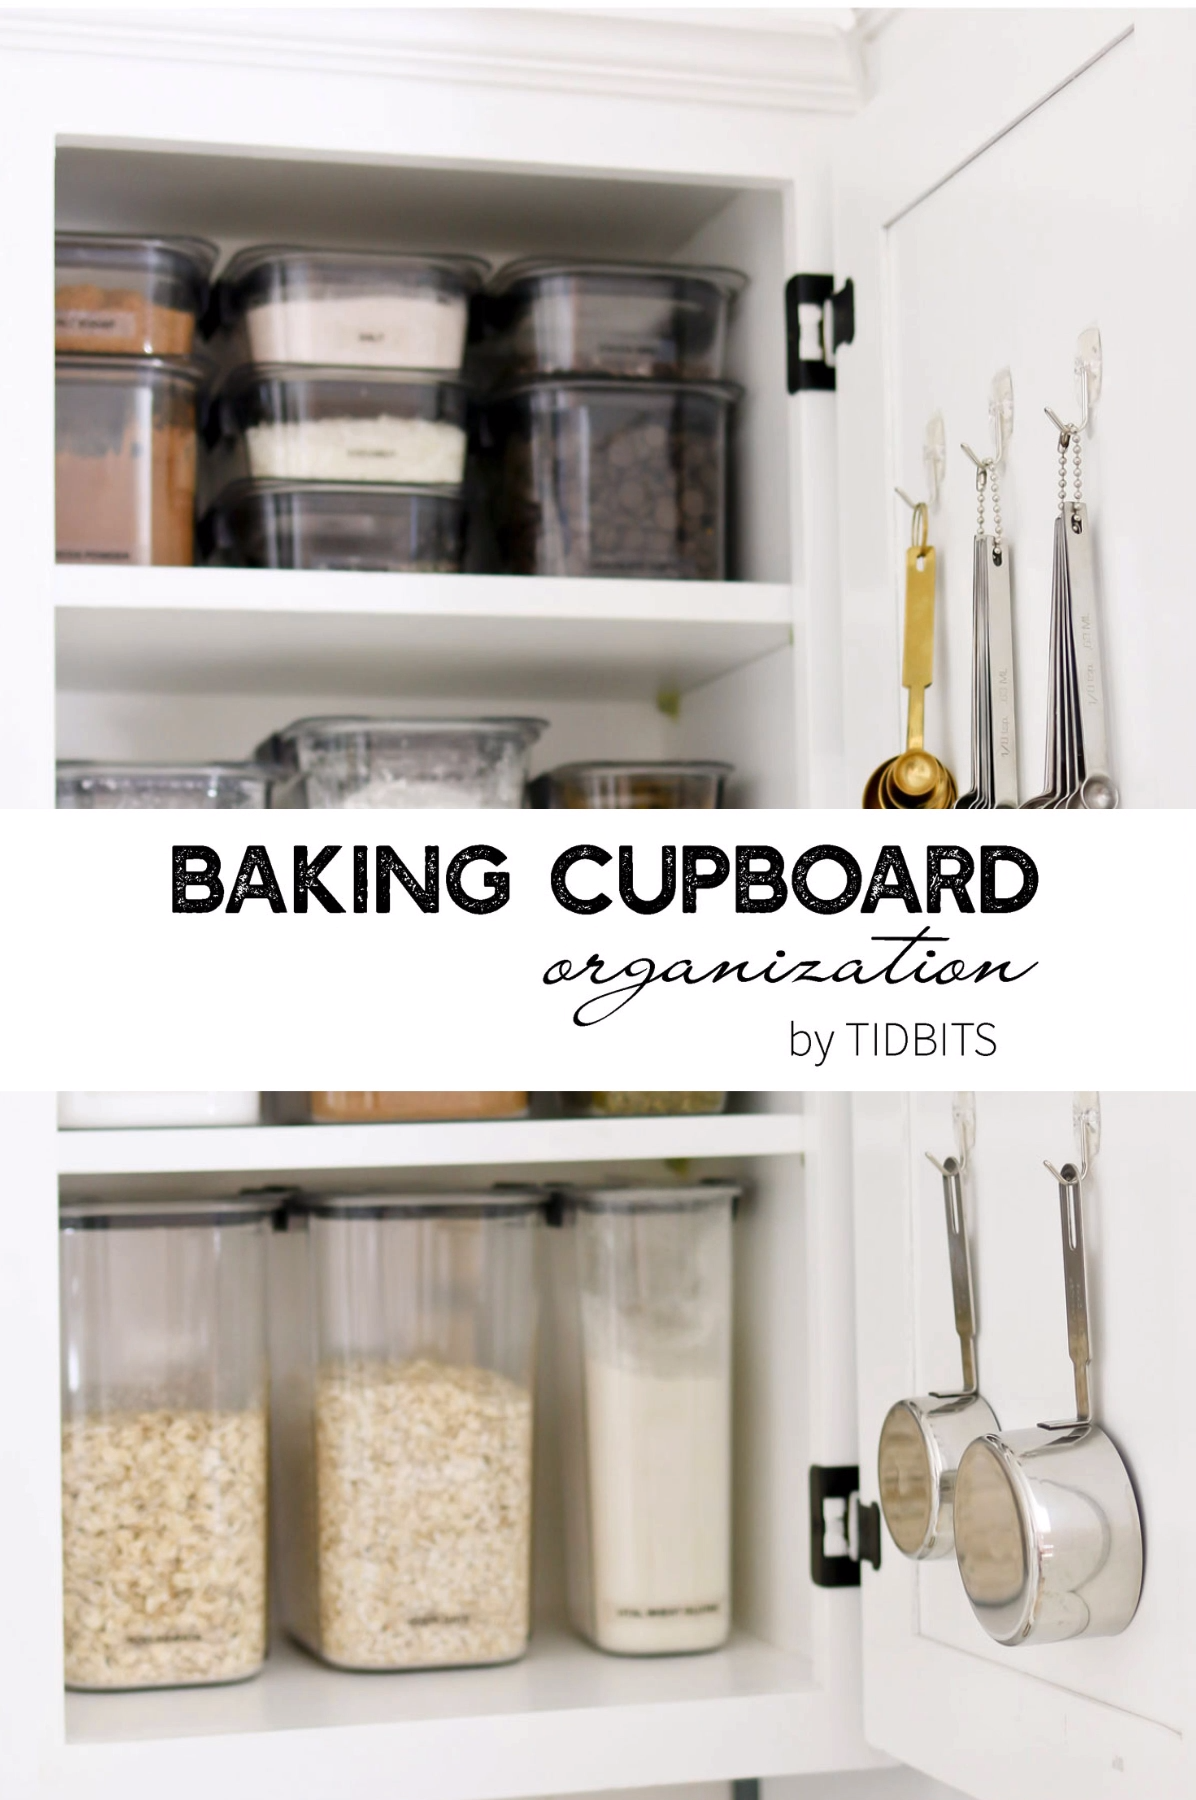 Baking Cupboard Organization - Cupboards organization, Kitchen cupboard organization, Baking cupboard, Kitchen organization, Cupboard, Kitchen cabinet organization - What's behind closed doors is not always pretty and functional  but it sure can be! I hope you'll be inspired by my new baking cupboard organization, enjoy hearing about my process and take advantage of my free  Baking Cupboard Essentials  printable checklist